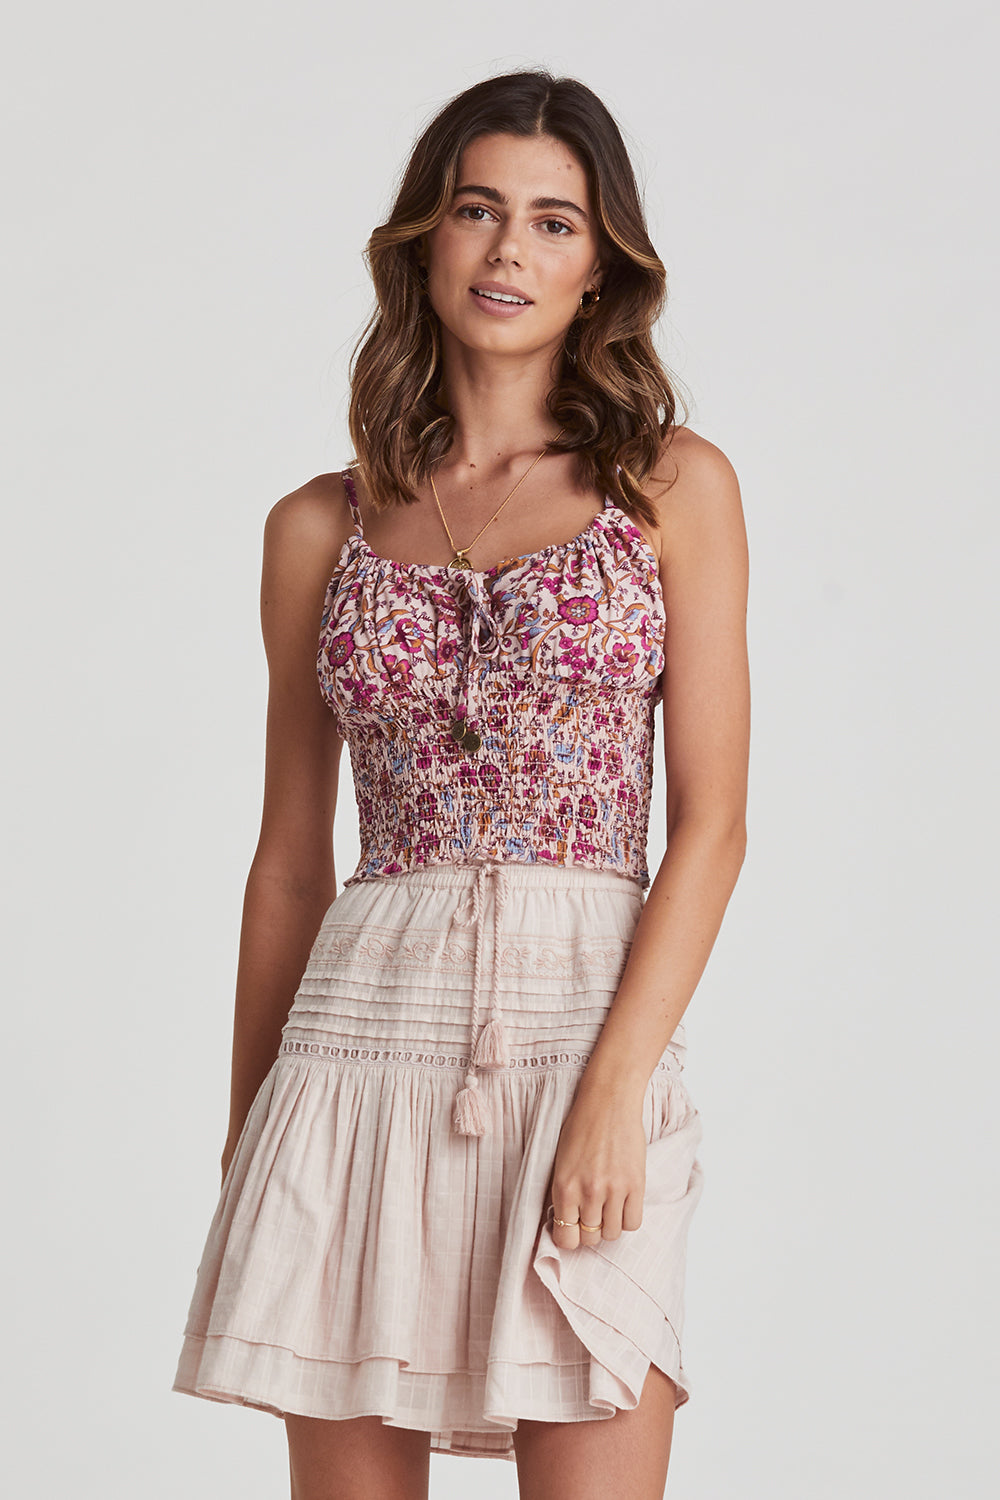 Daisy Chain Cami in Candy